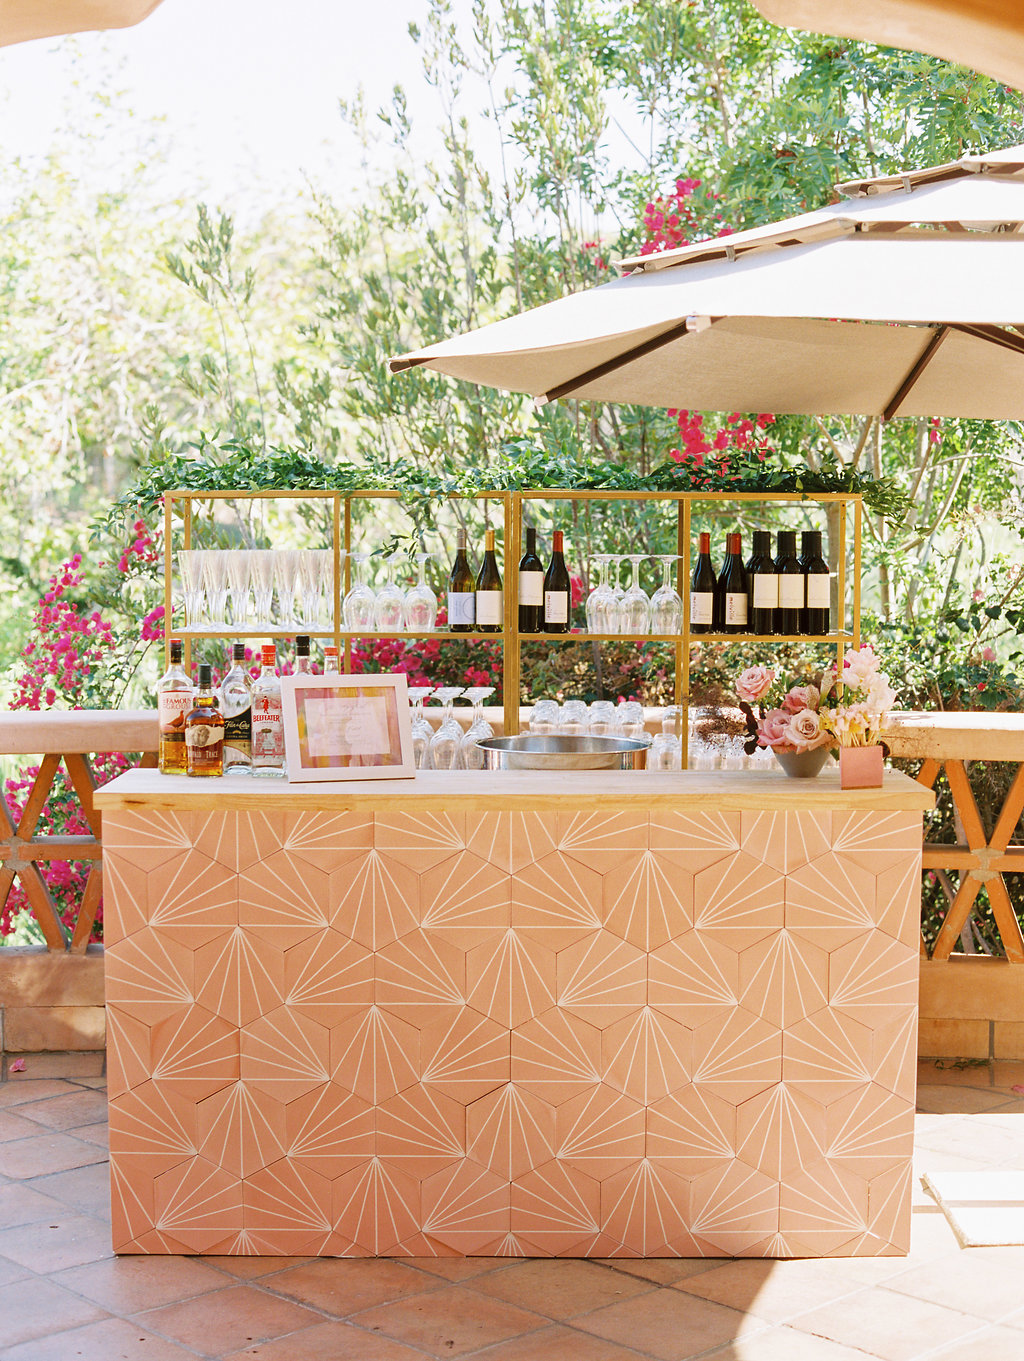 paige zack wedding bar with umbrella